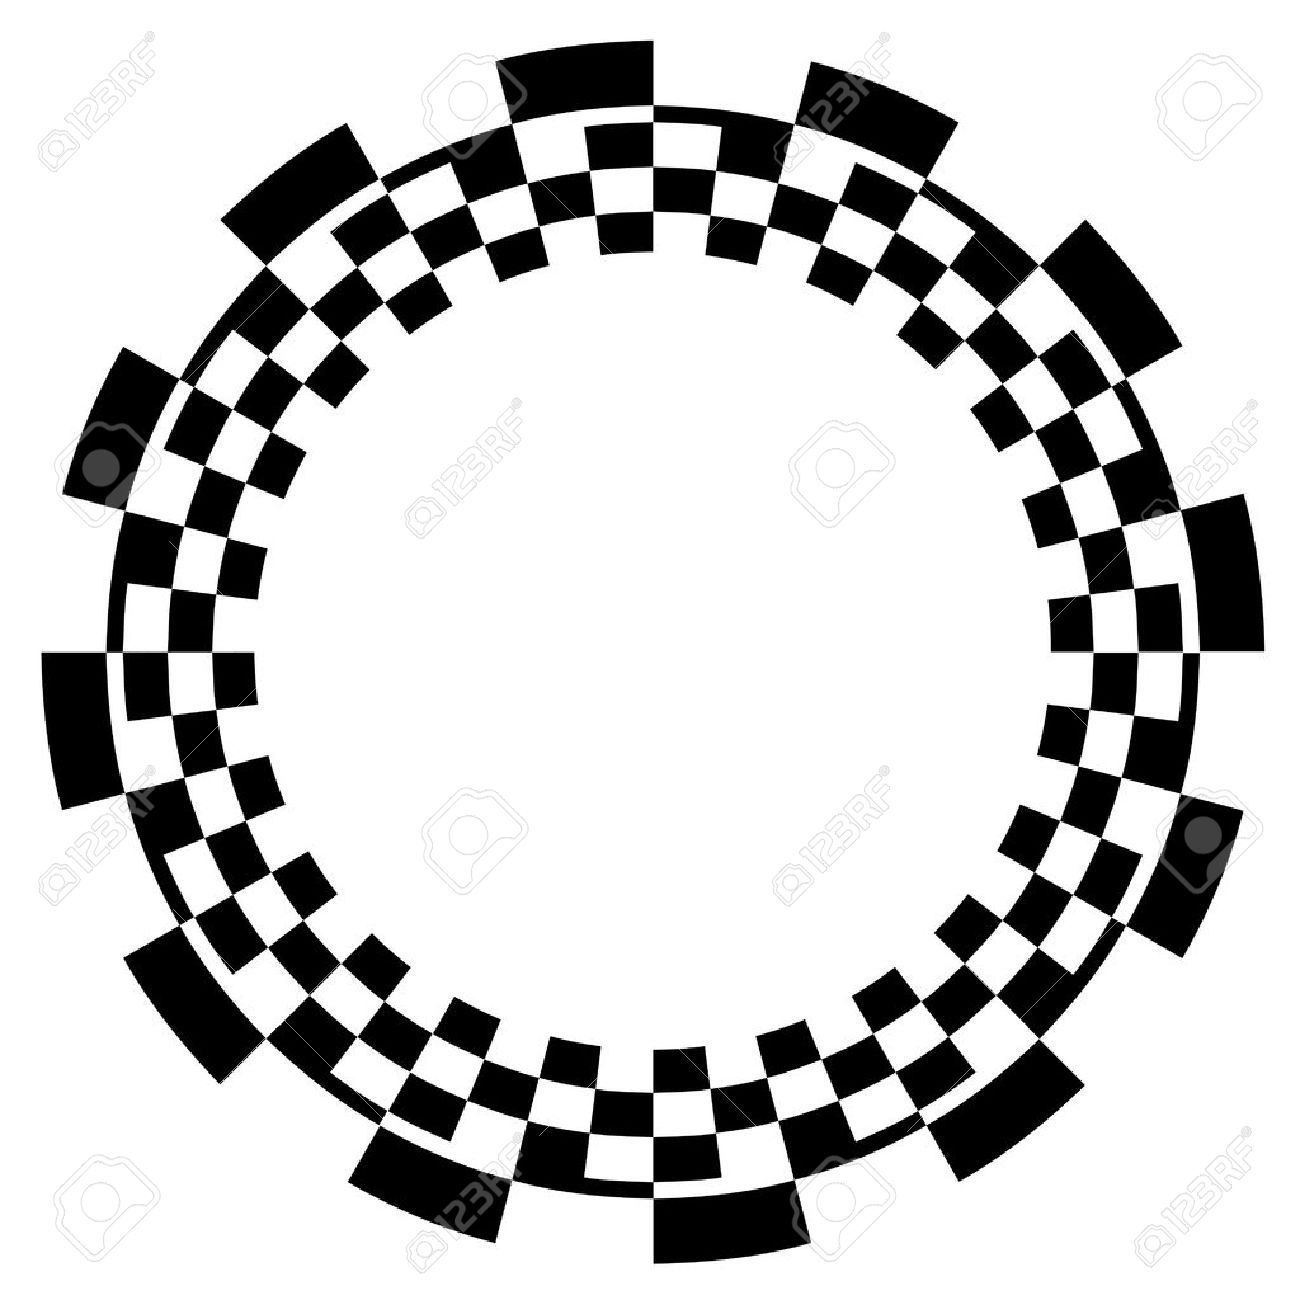 Checkerboard Frame, Spiral Design Border Pattern, Copy Space, Black on White  EPS8 Stock Vector - 12496750